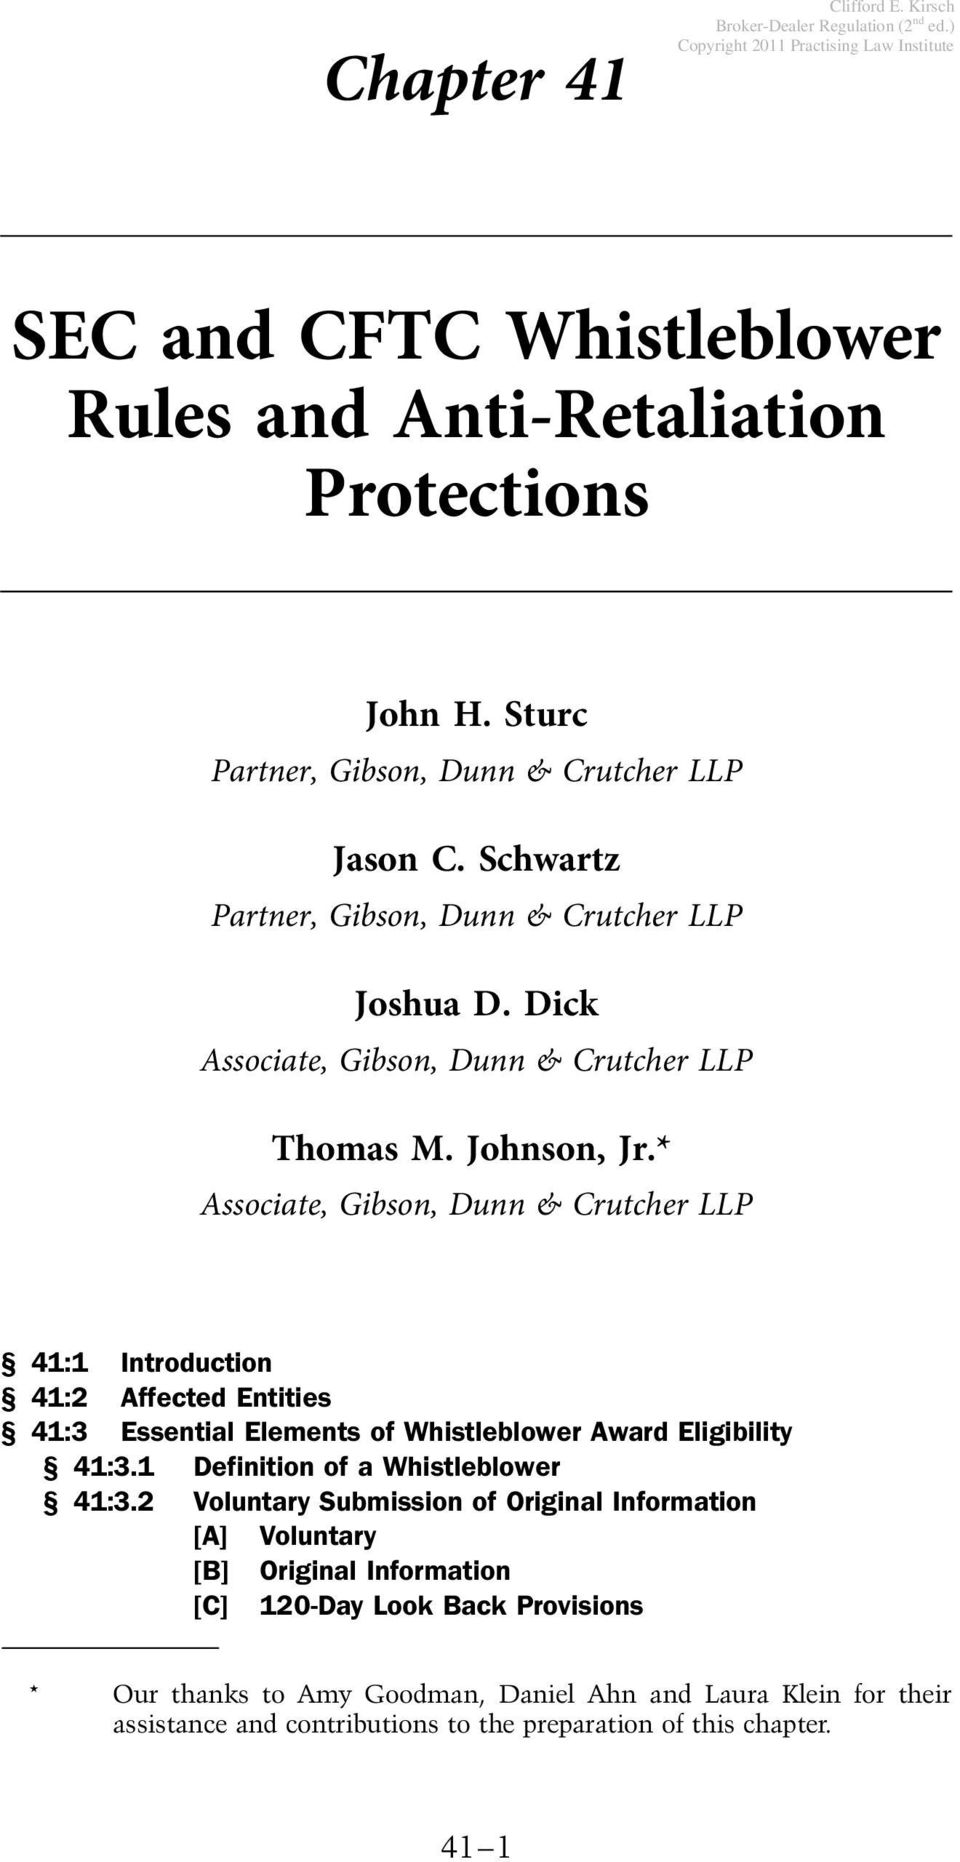 * * Associate, Gibson, Dunn & Crutcher LLP 41:1 Introduction 41:2 Affected Entities 41:3 Essential Elements of Whistleblower Award Eligibility 41:3.1 Definition of a Whistleblower 41:3.